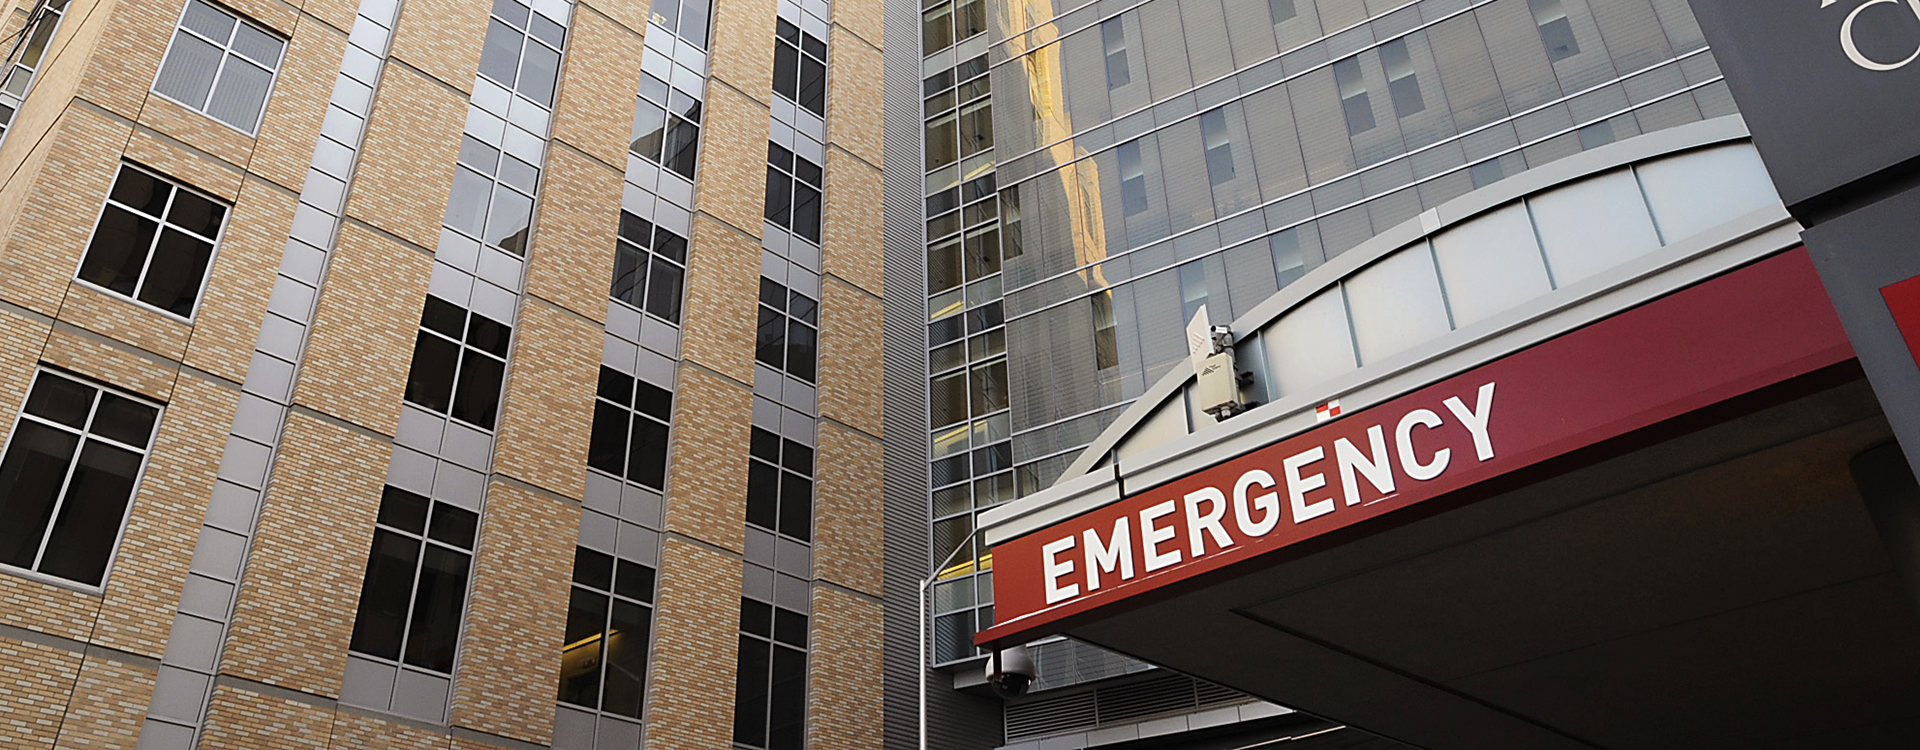 Harborview emergency room entrance